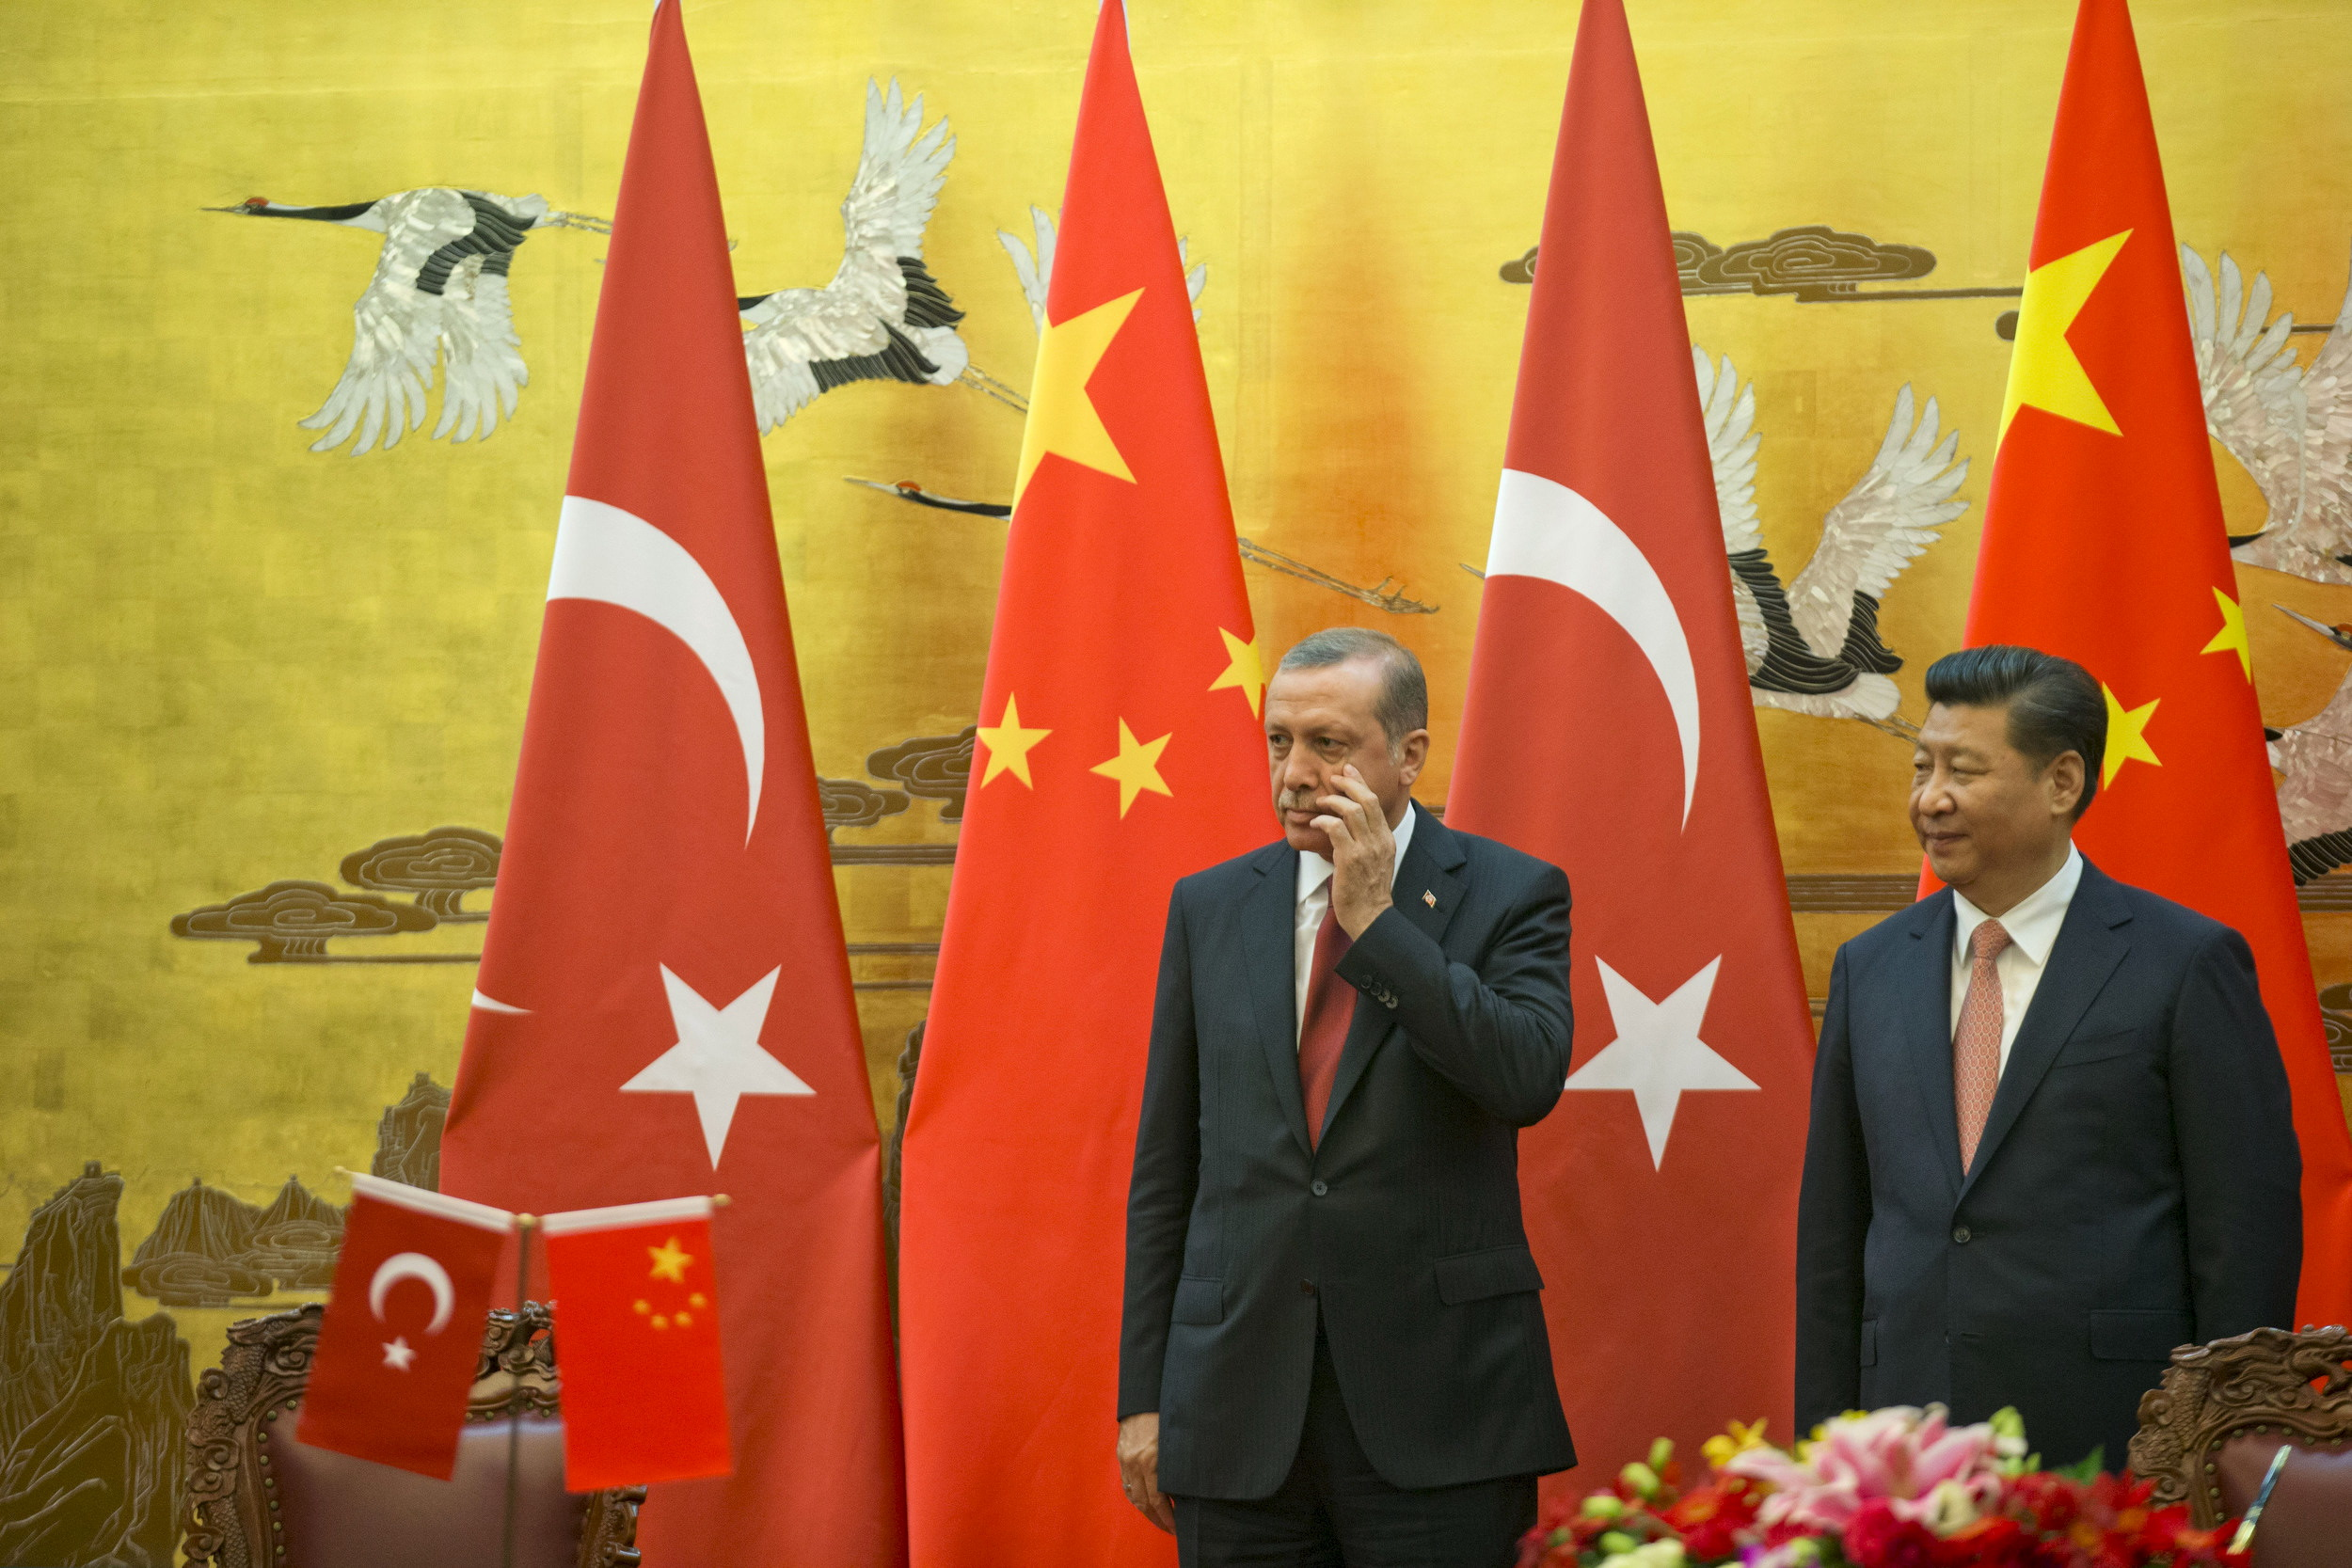 Chinese President Xi Jinping (R) stands next to Turkey's President Recep Tayyip Erdogan, as they attend a signing ceremony at the Great Hall of the People in Beijing, China July 29, 2015. REUTERS/Ng Han Guan/Pool - RTX1M991